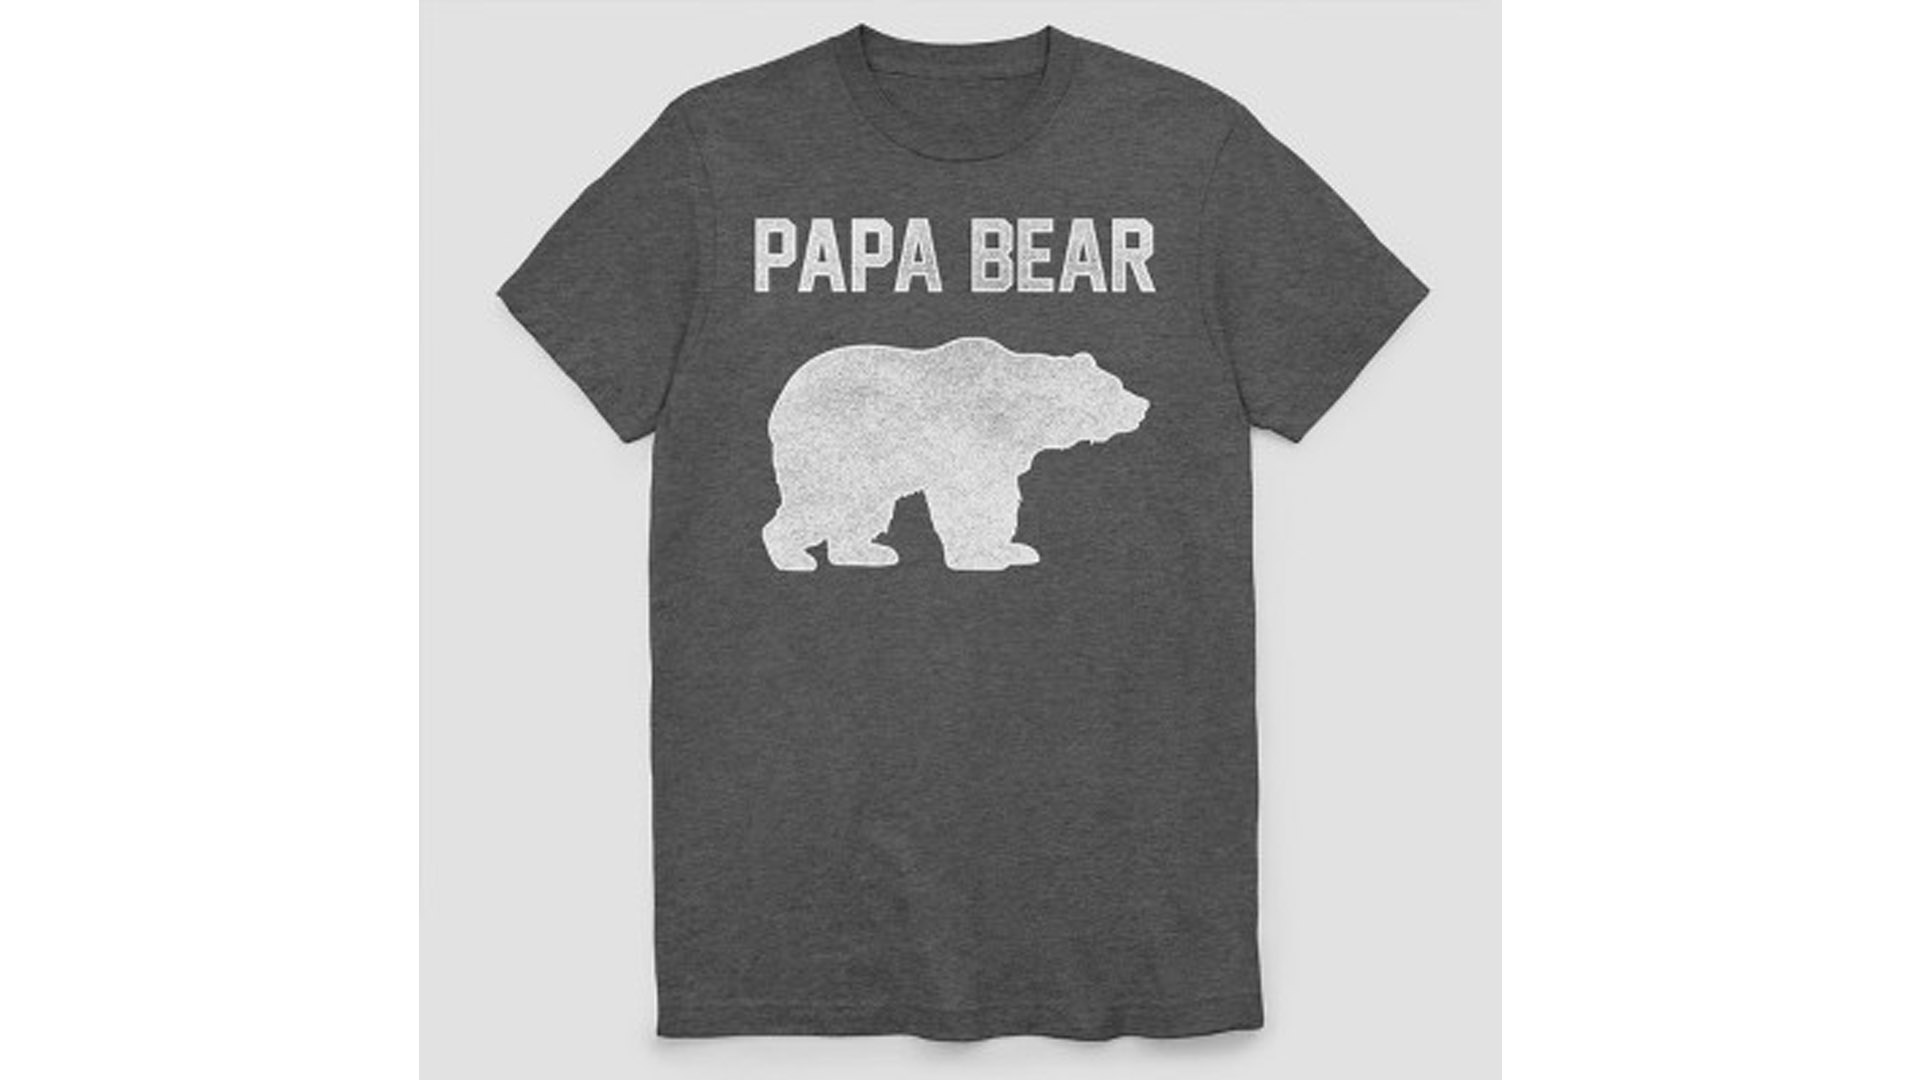 Purchase Papa Bear - One Of 10 Awesome T-Shirts Through Lemoney